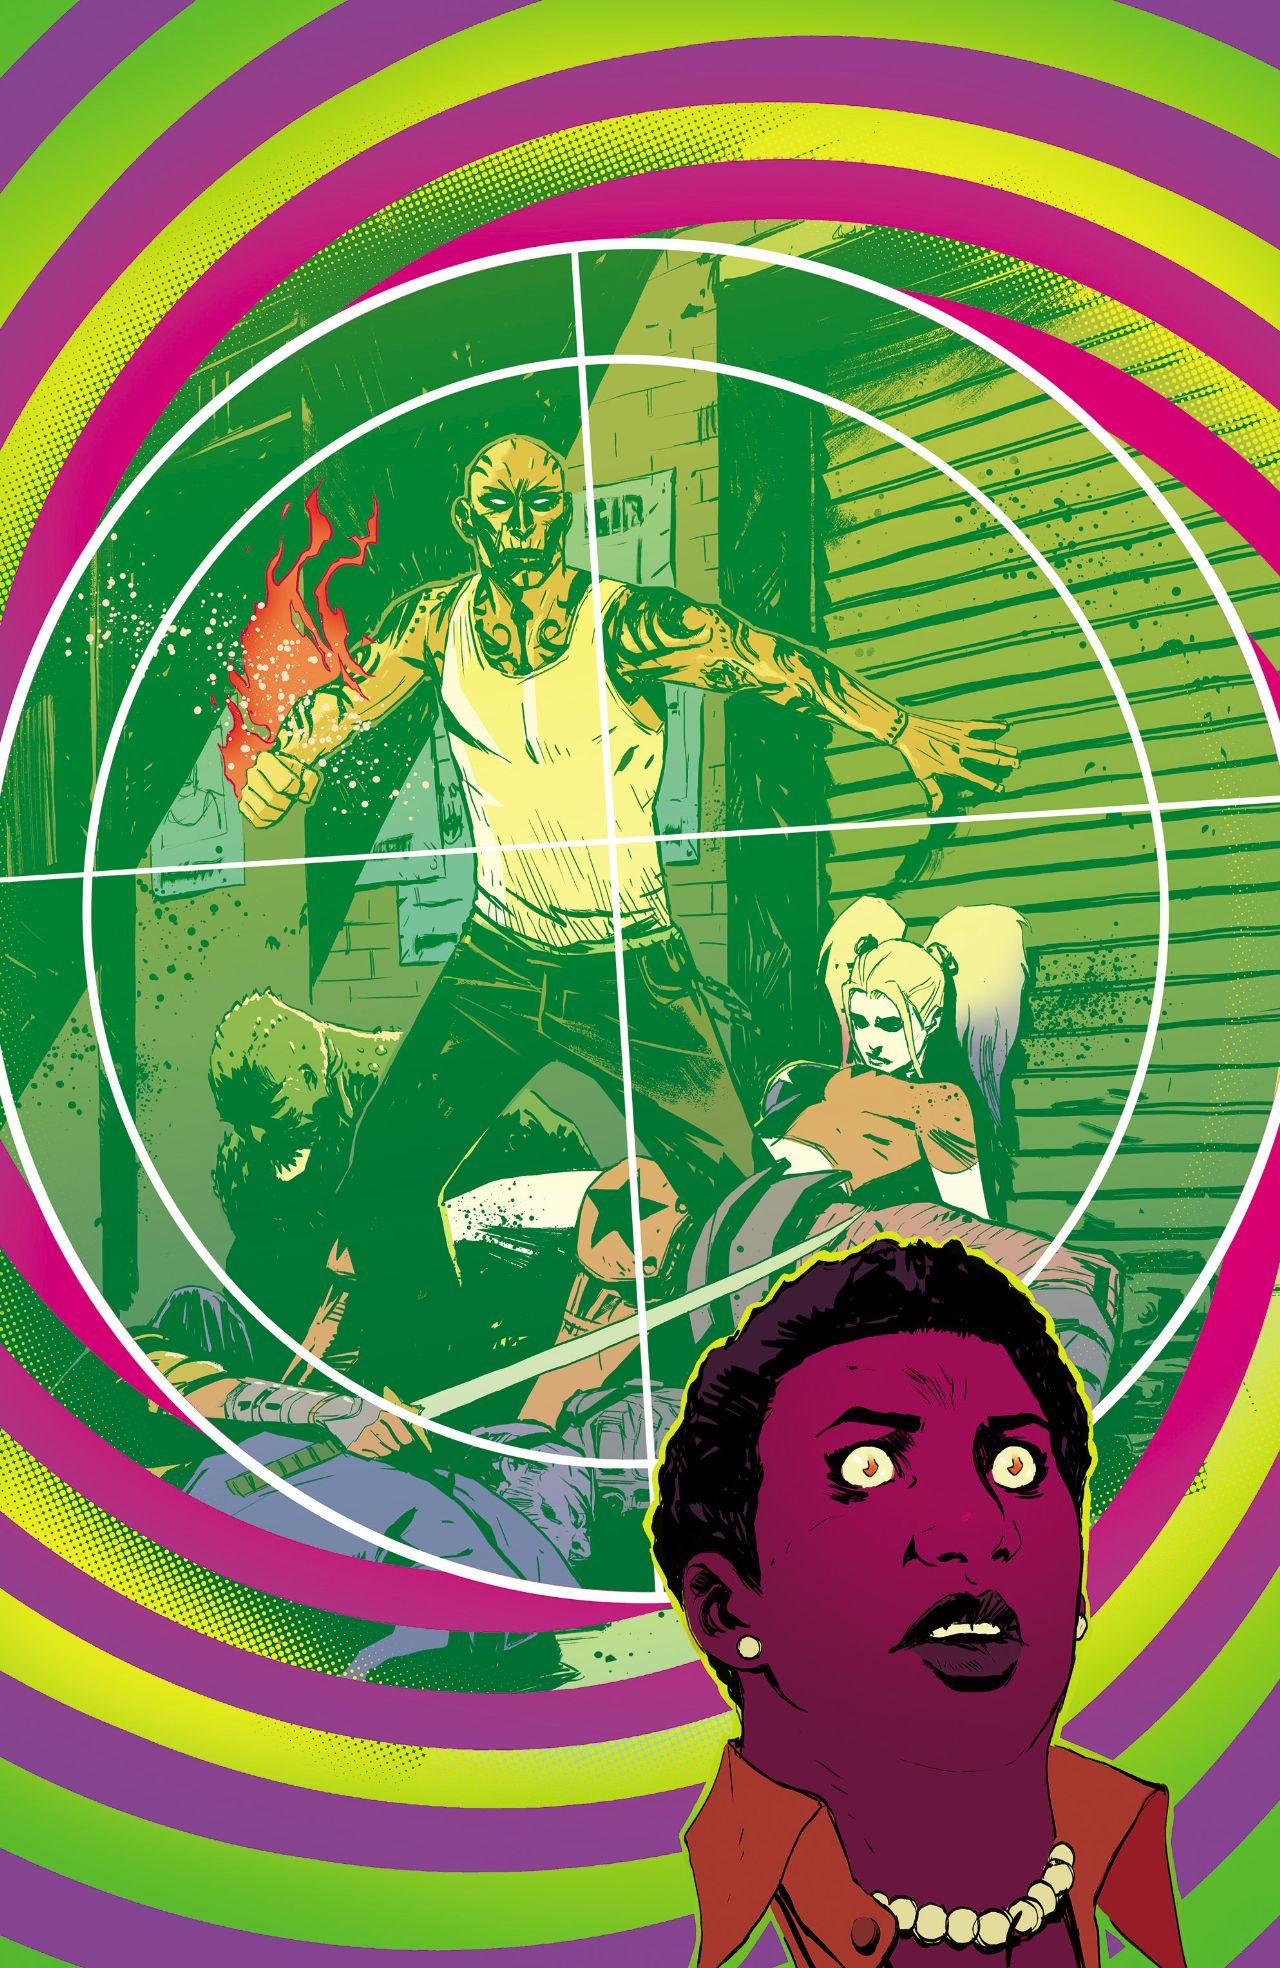 Cover of Most Wanted: El Diablo and Amanda Waller by Mike Huddleston, written by Vita Ayala and Jai Nitz